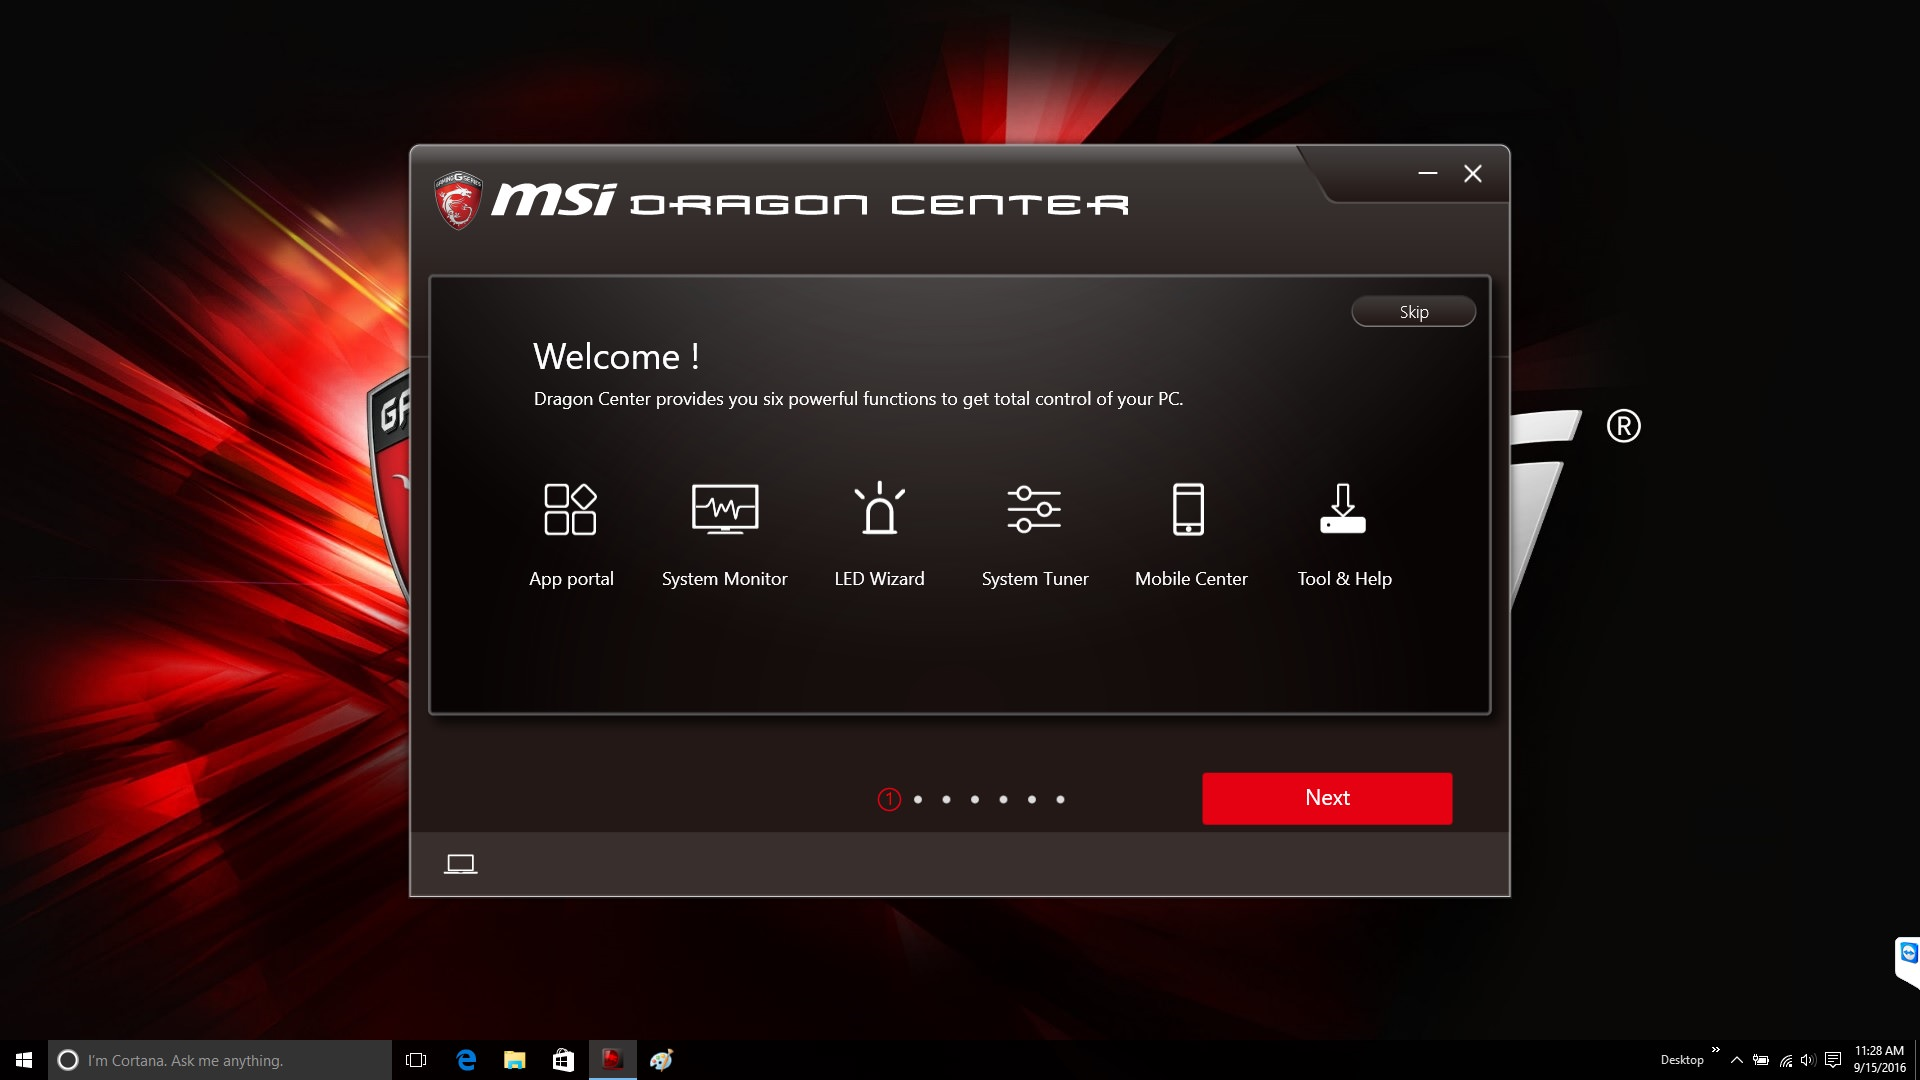 MSI Dragon Gaming Center